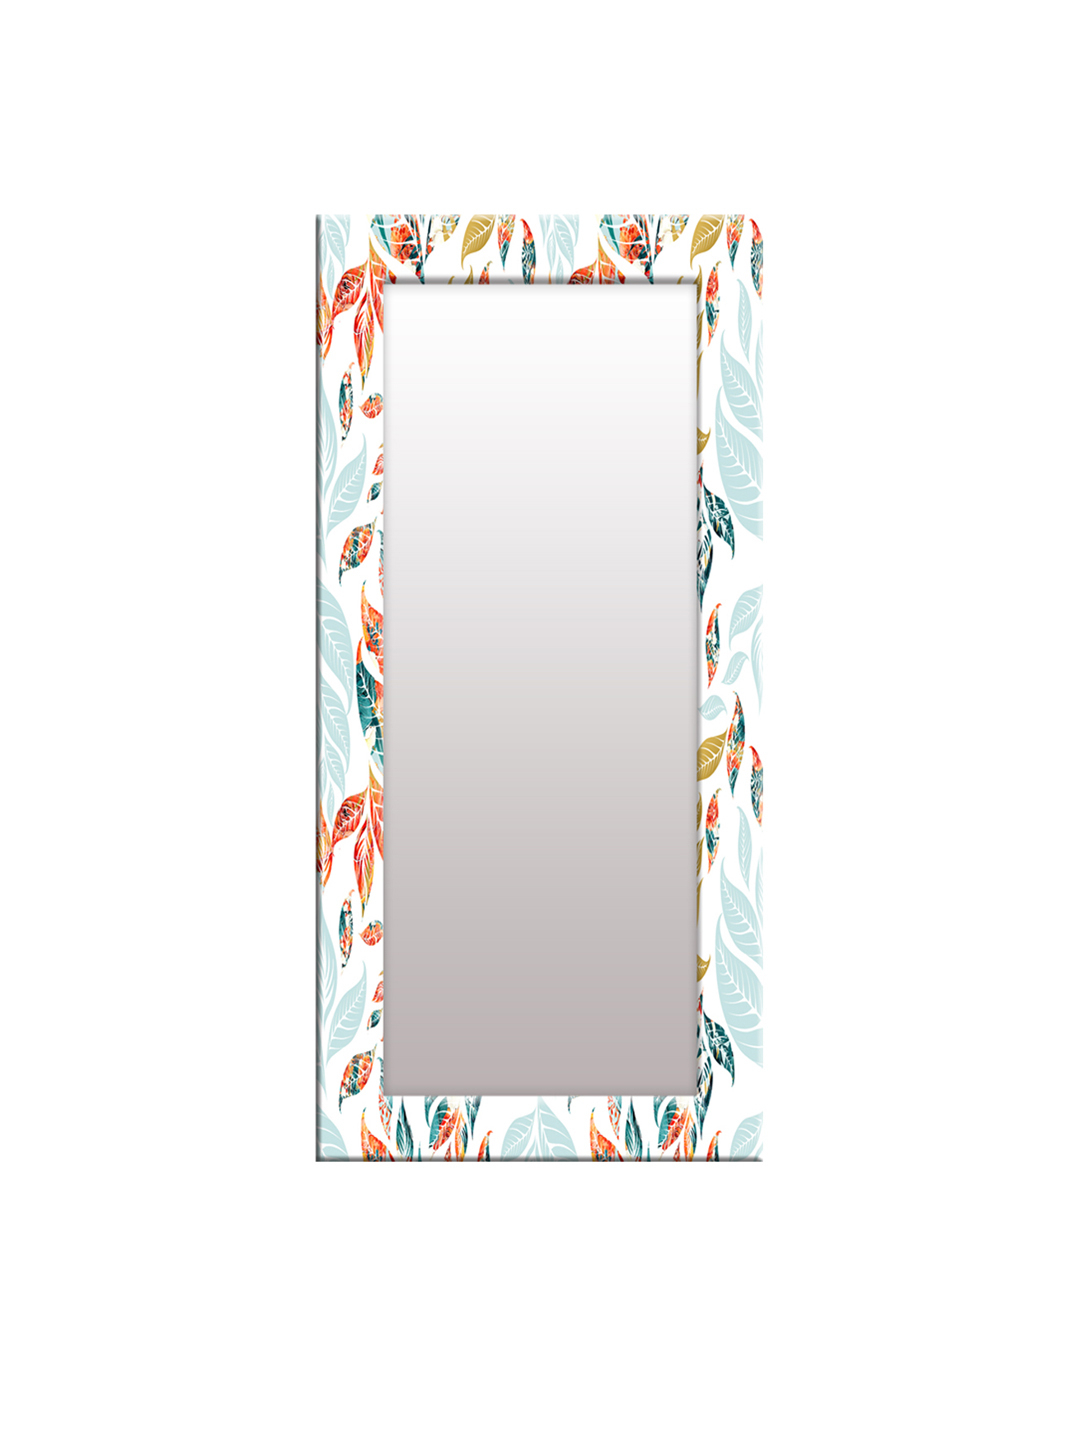 Orange Framed Wall Mirrors Throughout Current Buy 999Store White & Orange Framed Wall Mirror – Mirrors For Unisex (View 15 of 20)